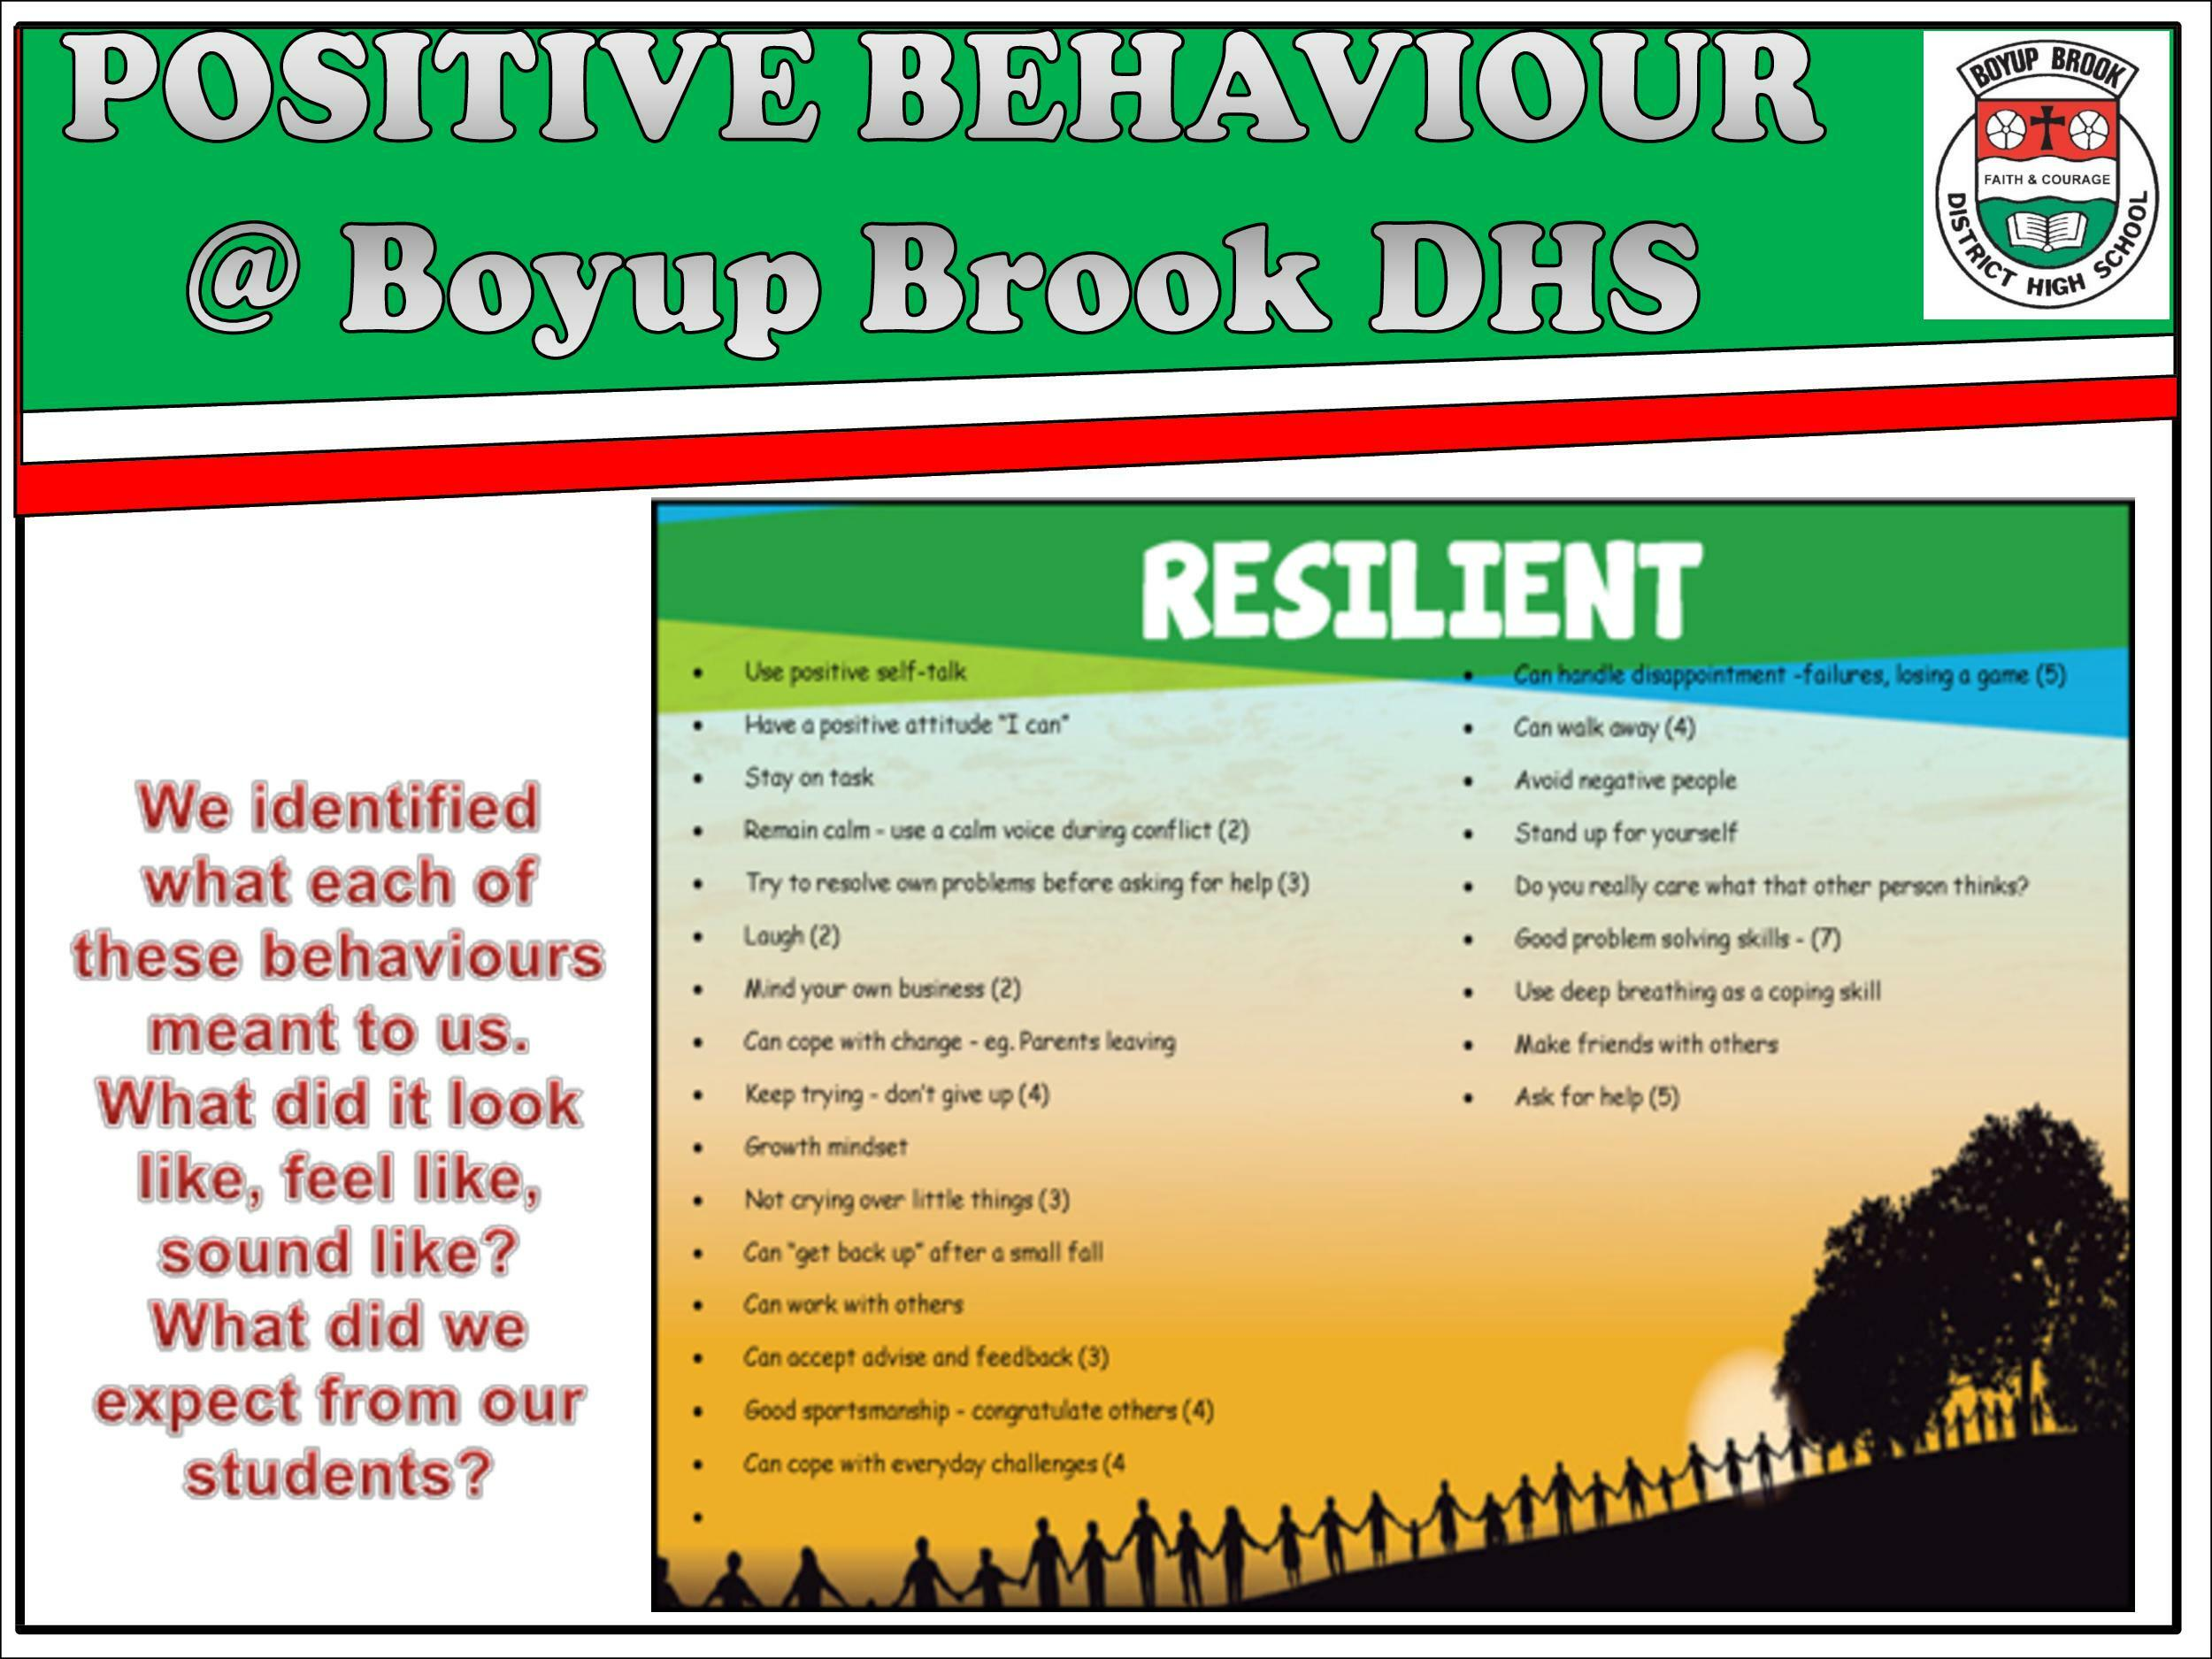 Positive Behaviour Support Page 10